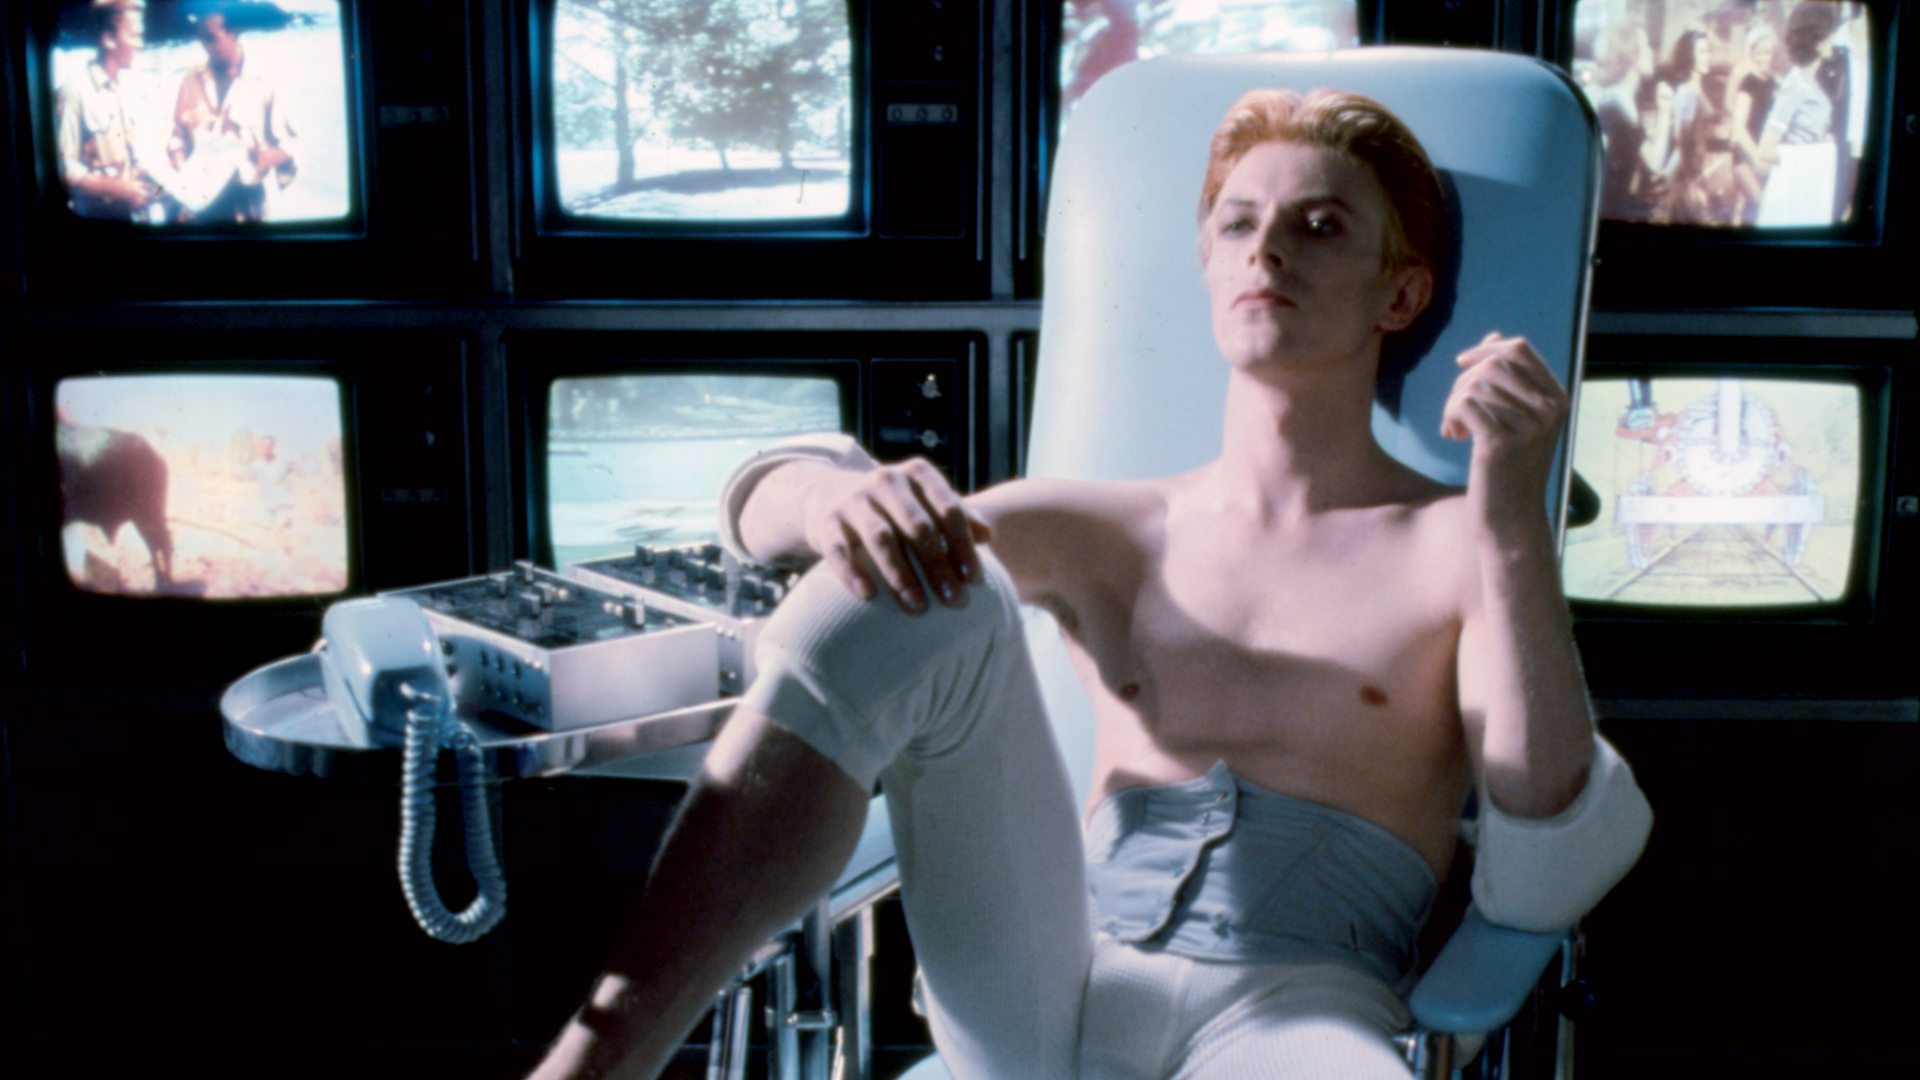 http://www.bfi.org.uk/films-tv-people/sites/bfi.org.uk.films-tv-people/files/image/20160918-man-who-fell-to-earth-1976-1920x1080.jpg